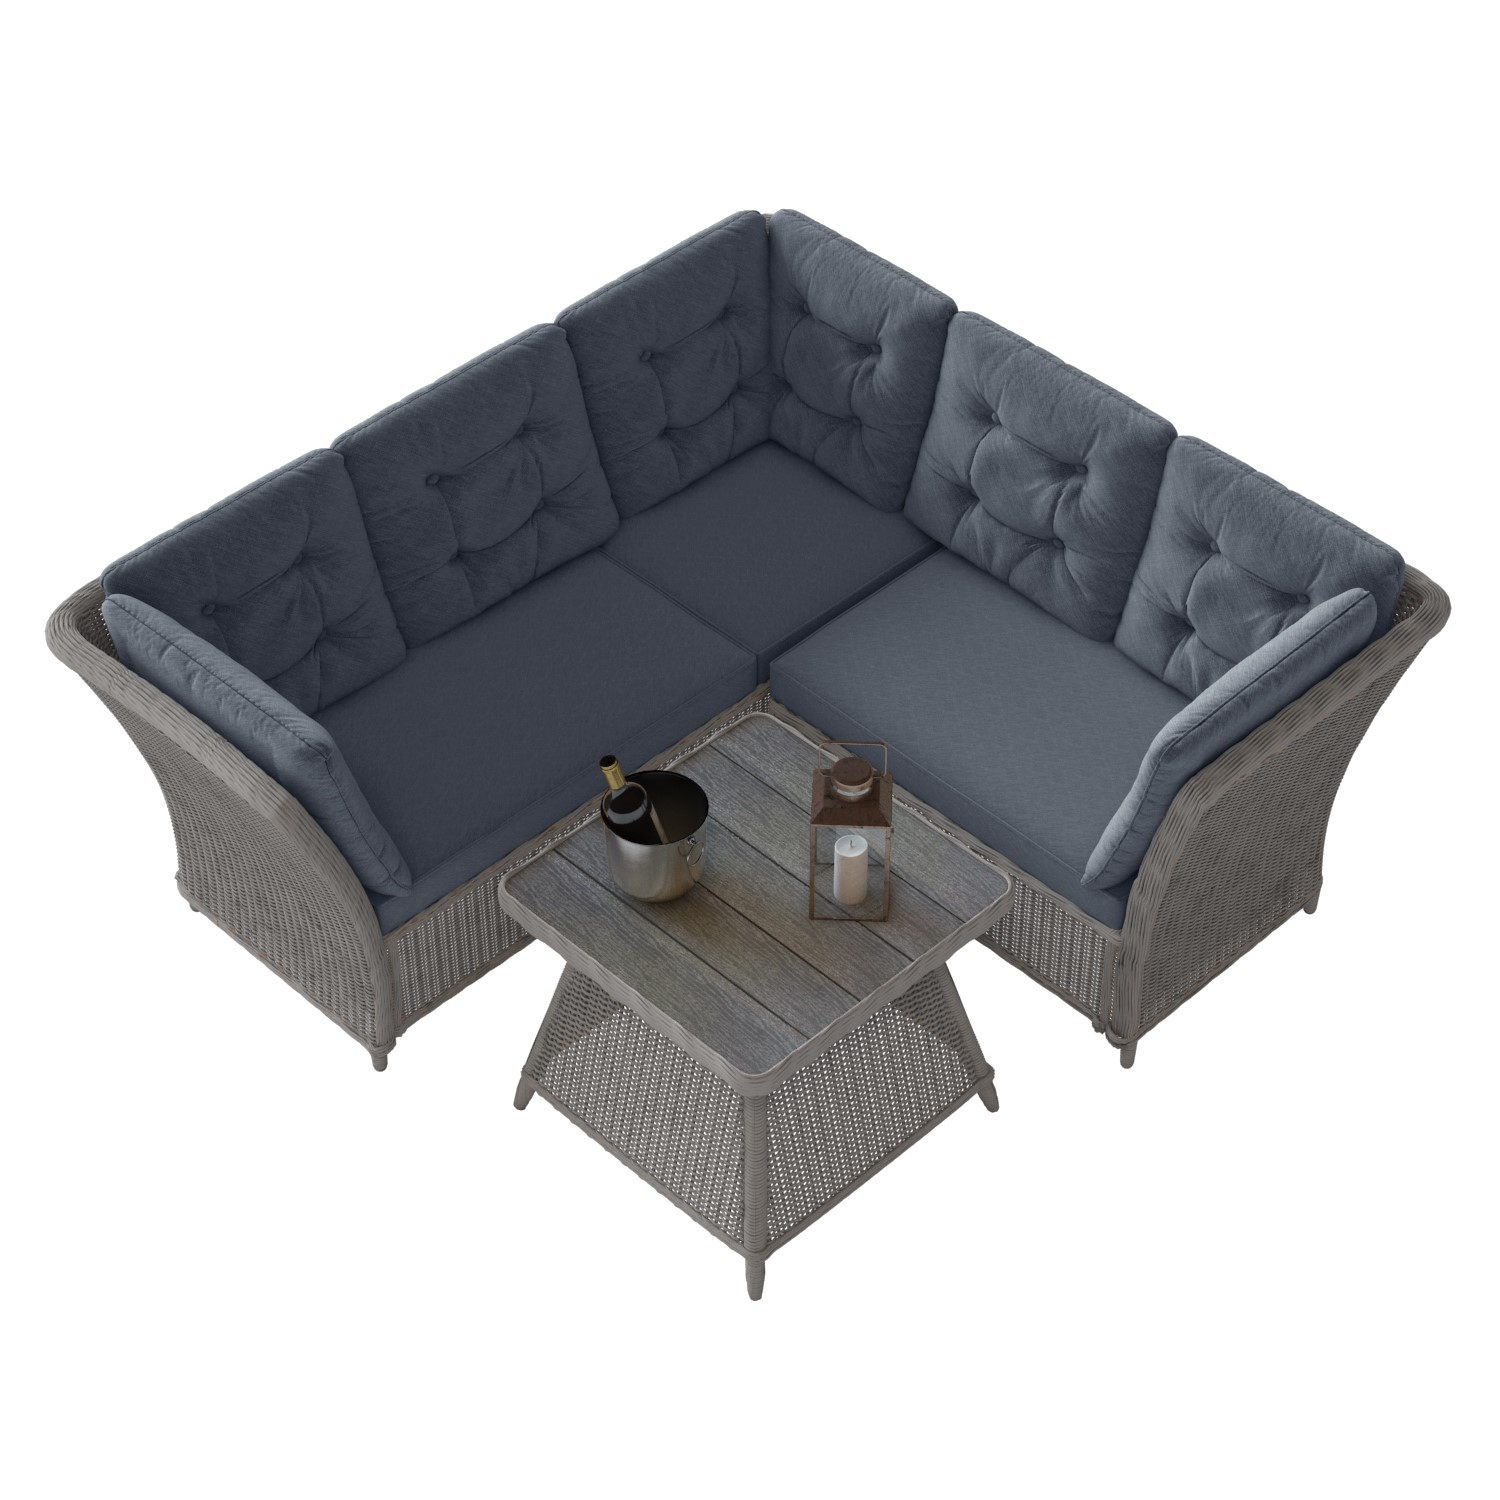 Grey Rattan Corner Sofa And Table Set Aspen Buyitdirect Ie